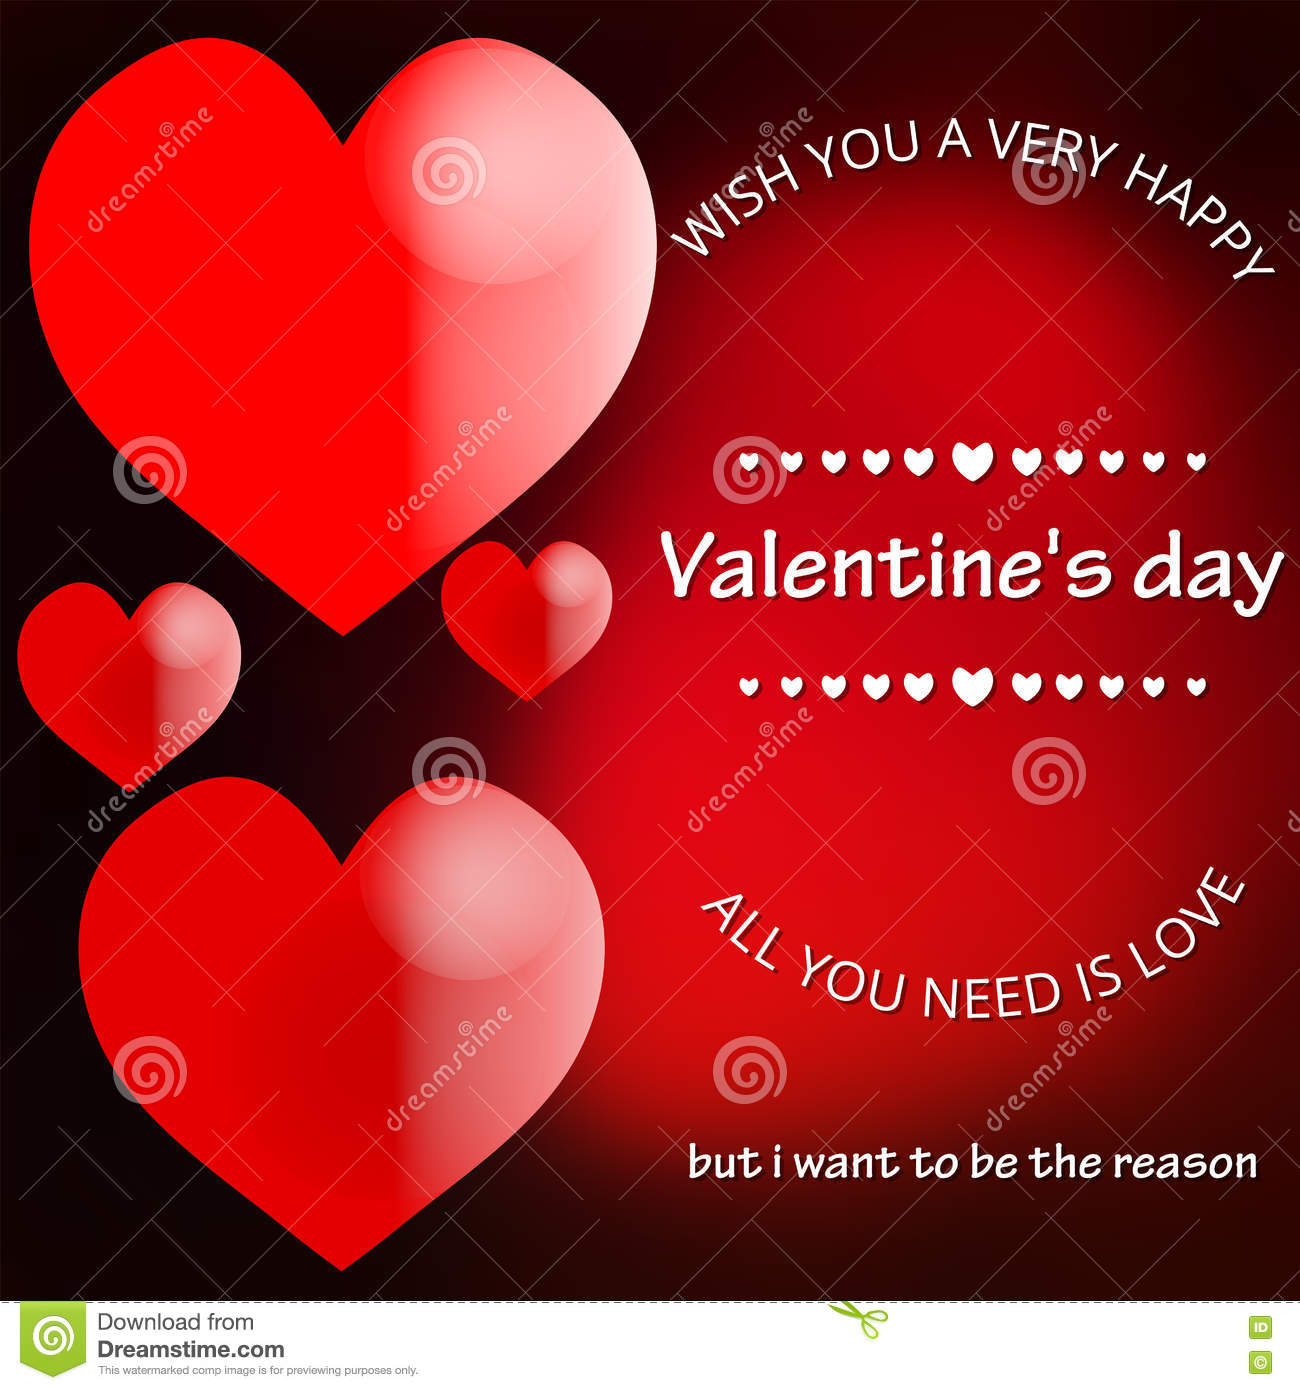 Elegant Card Blurred Background Valentines Day Love And